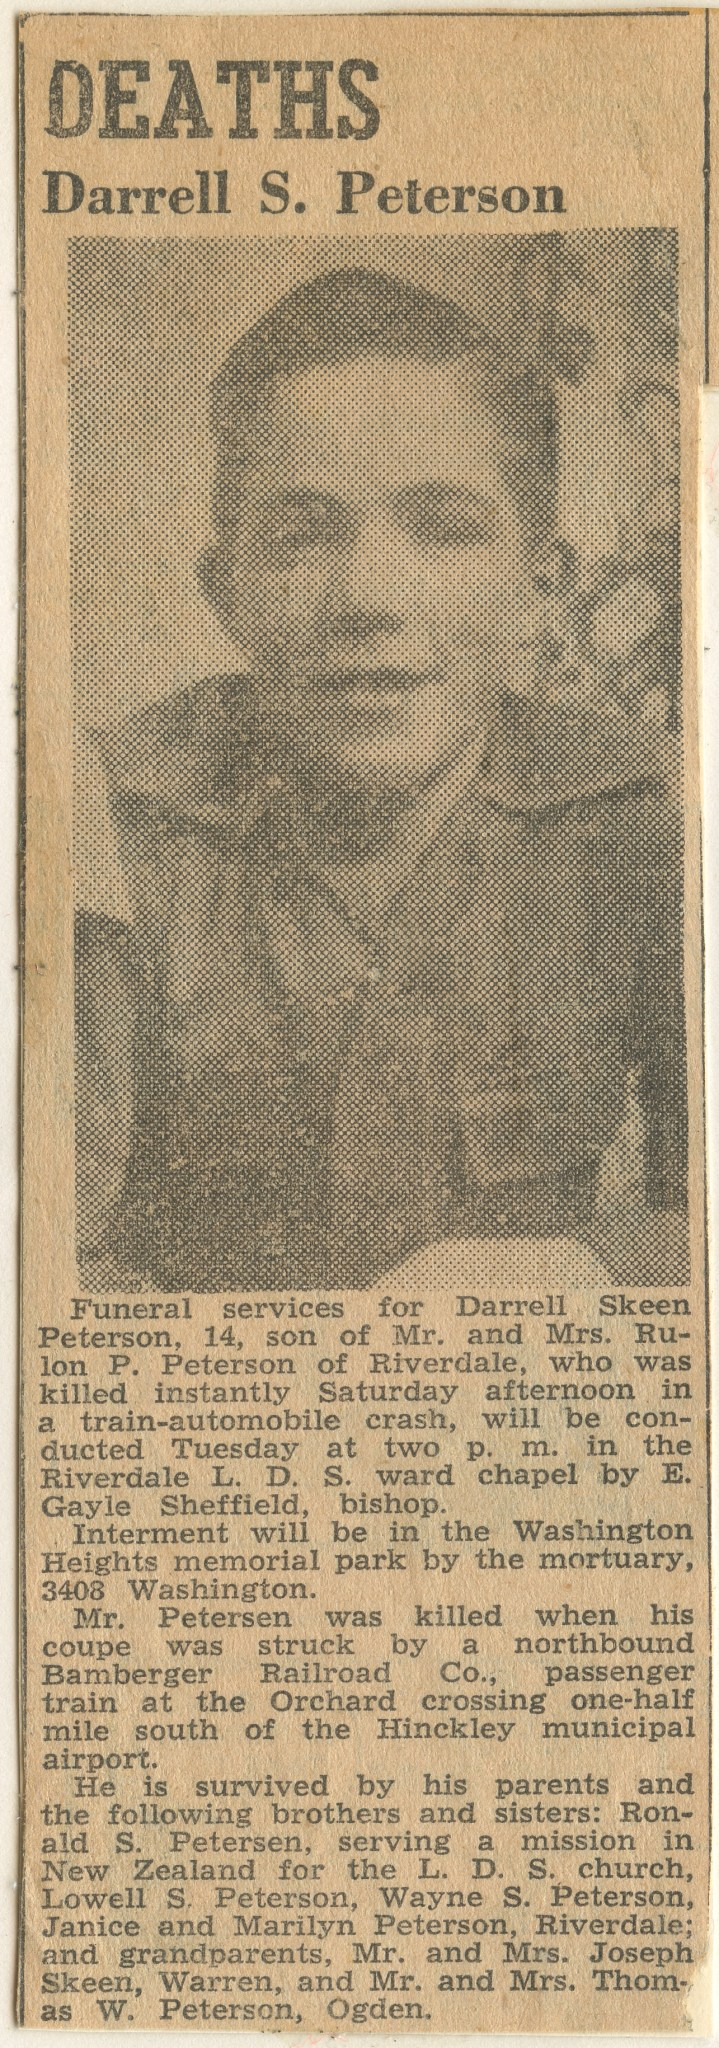 PETERSON, Darrell Skeen, first obitutary, 24 November 1947